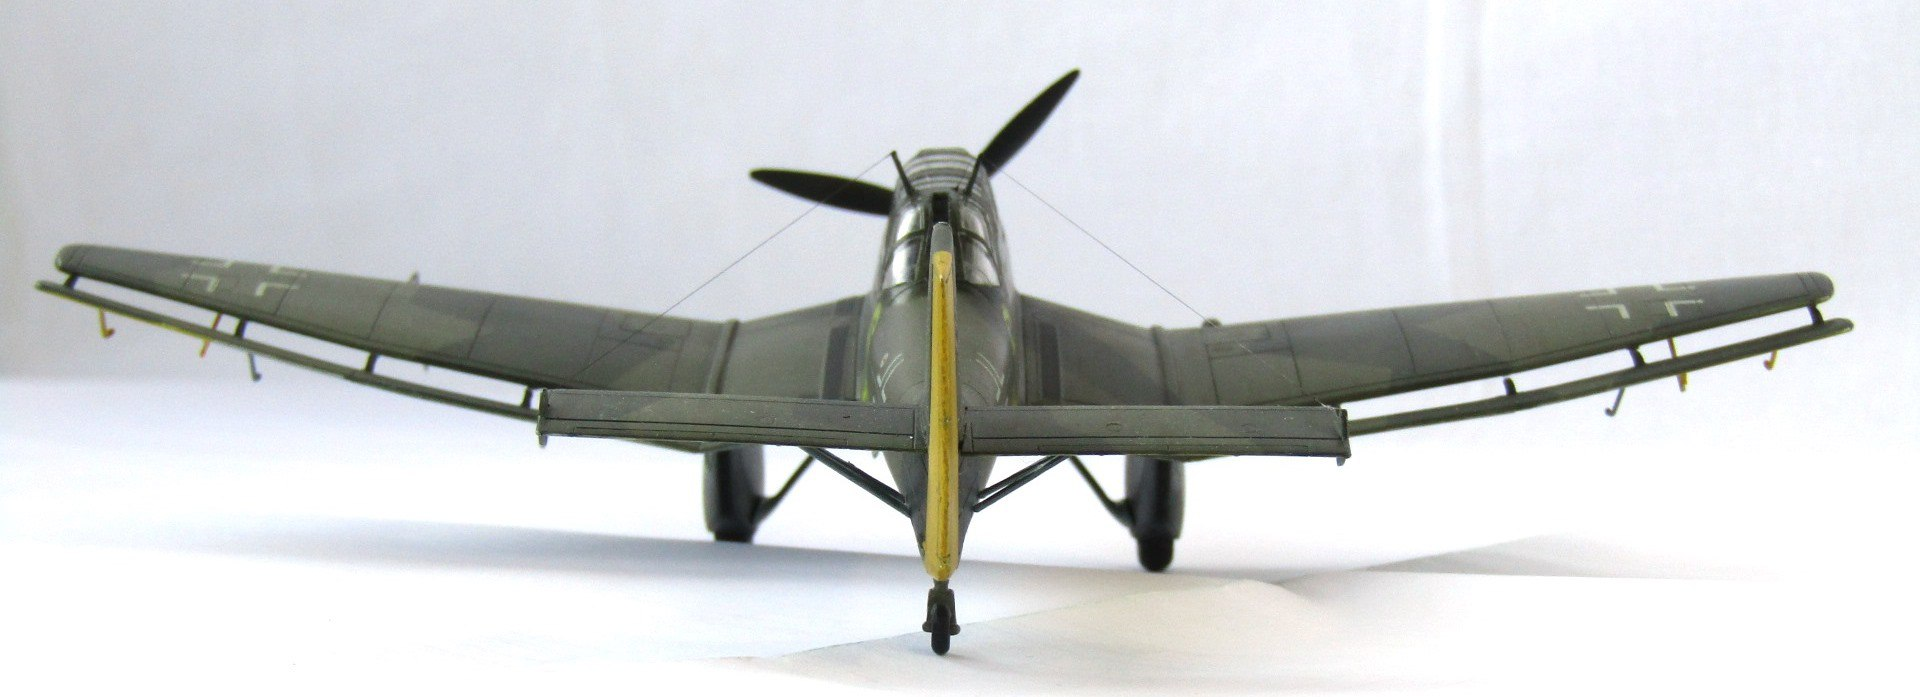 Ju-87A 1/72 (Special Hobby) JWHIlUD83UY